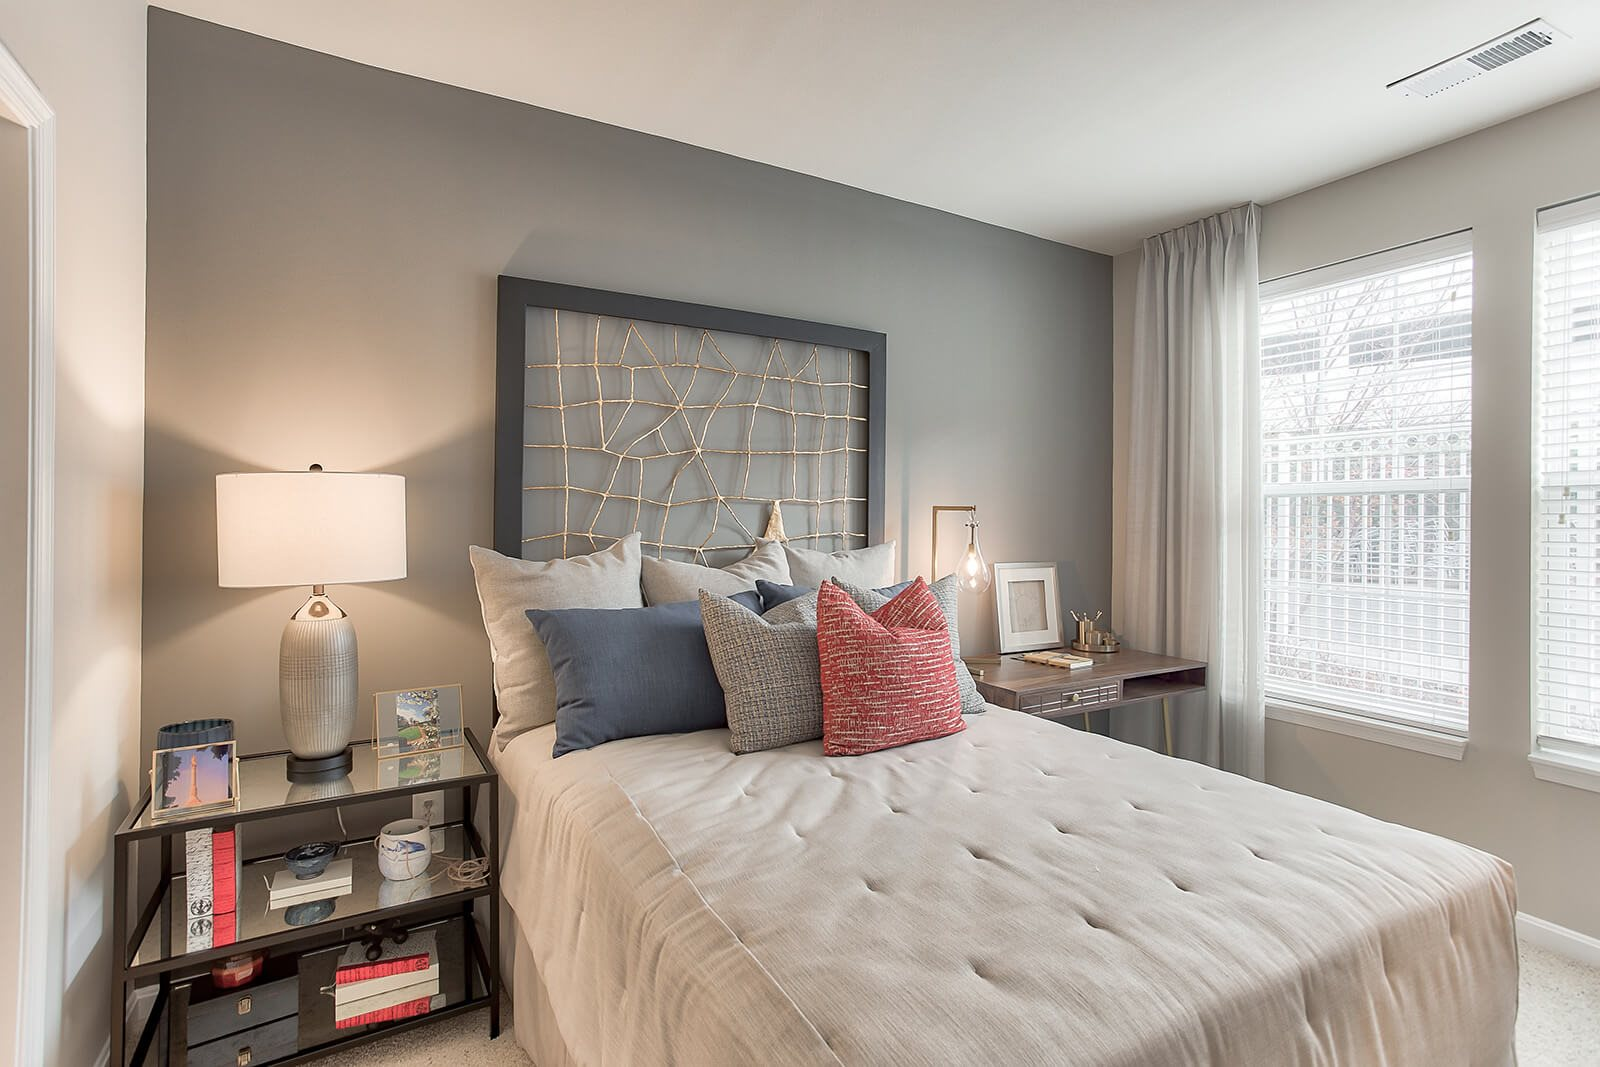 Master bedrooms with private bathrooms at The Ridgewood by Windsor, Virginia, 22030